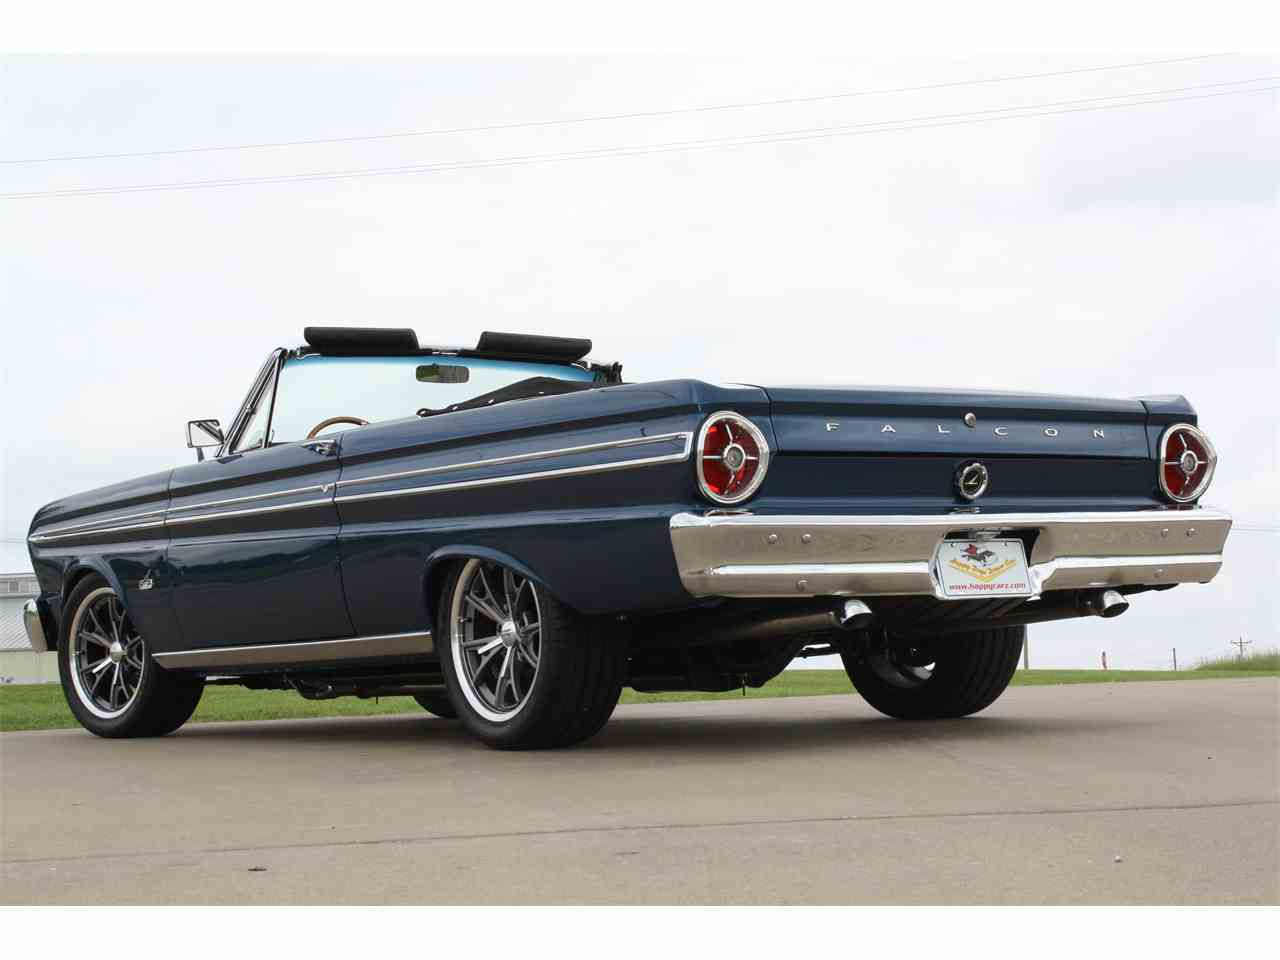 Large Picture of '65 Falcon Futura - MH4R